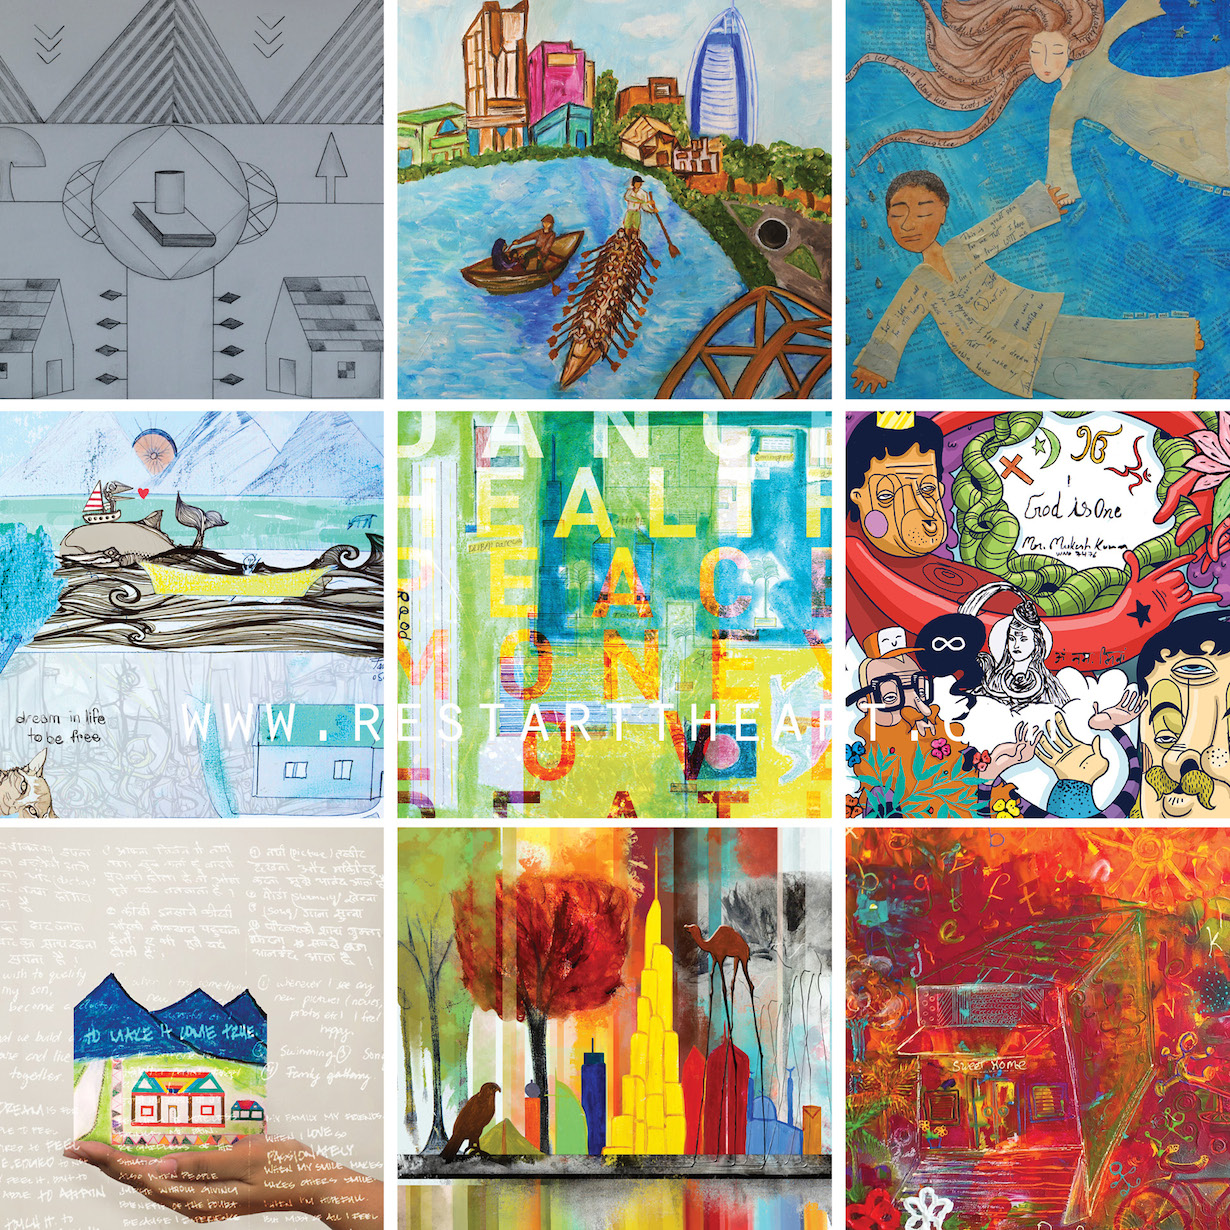 Just a small sample of the worker/artist collaborations. There are 43 in total!